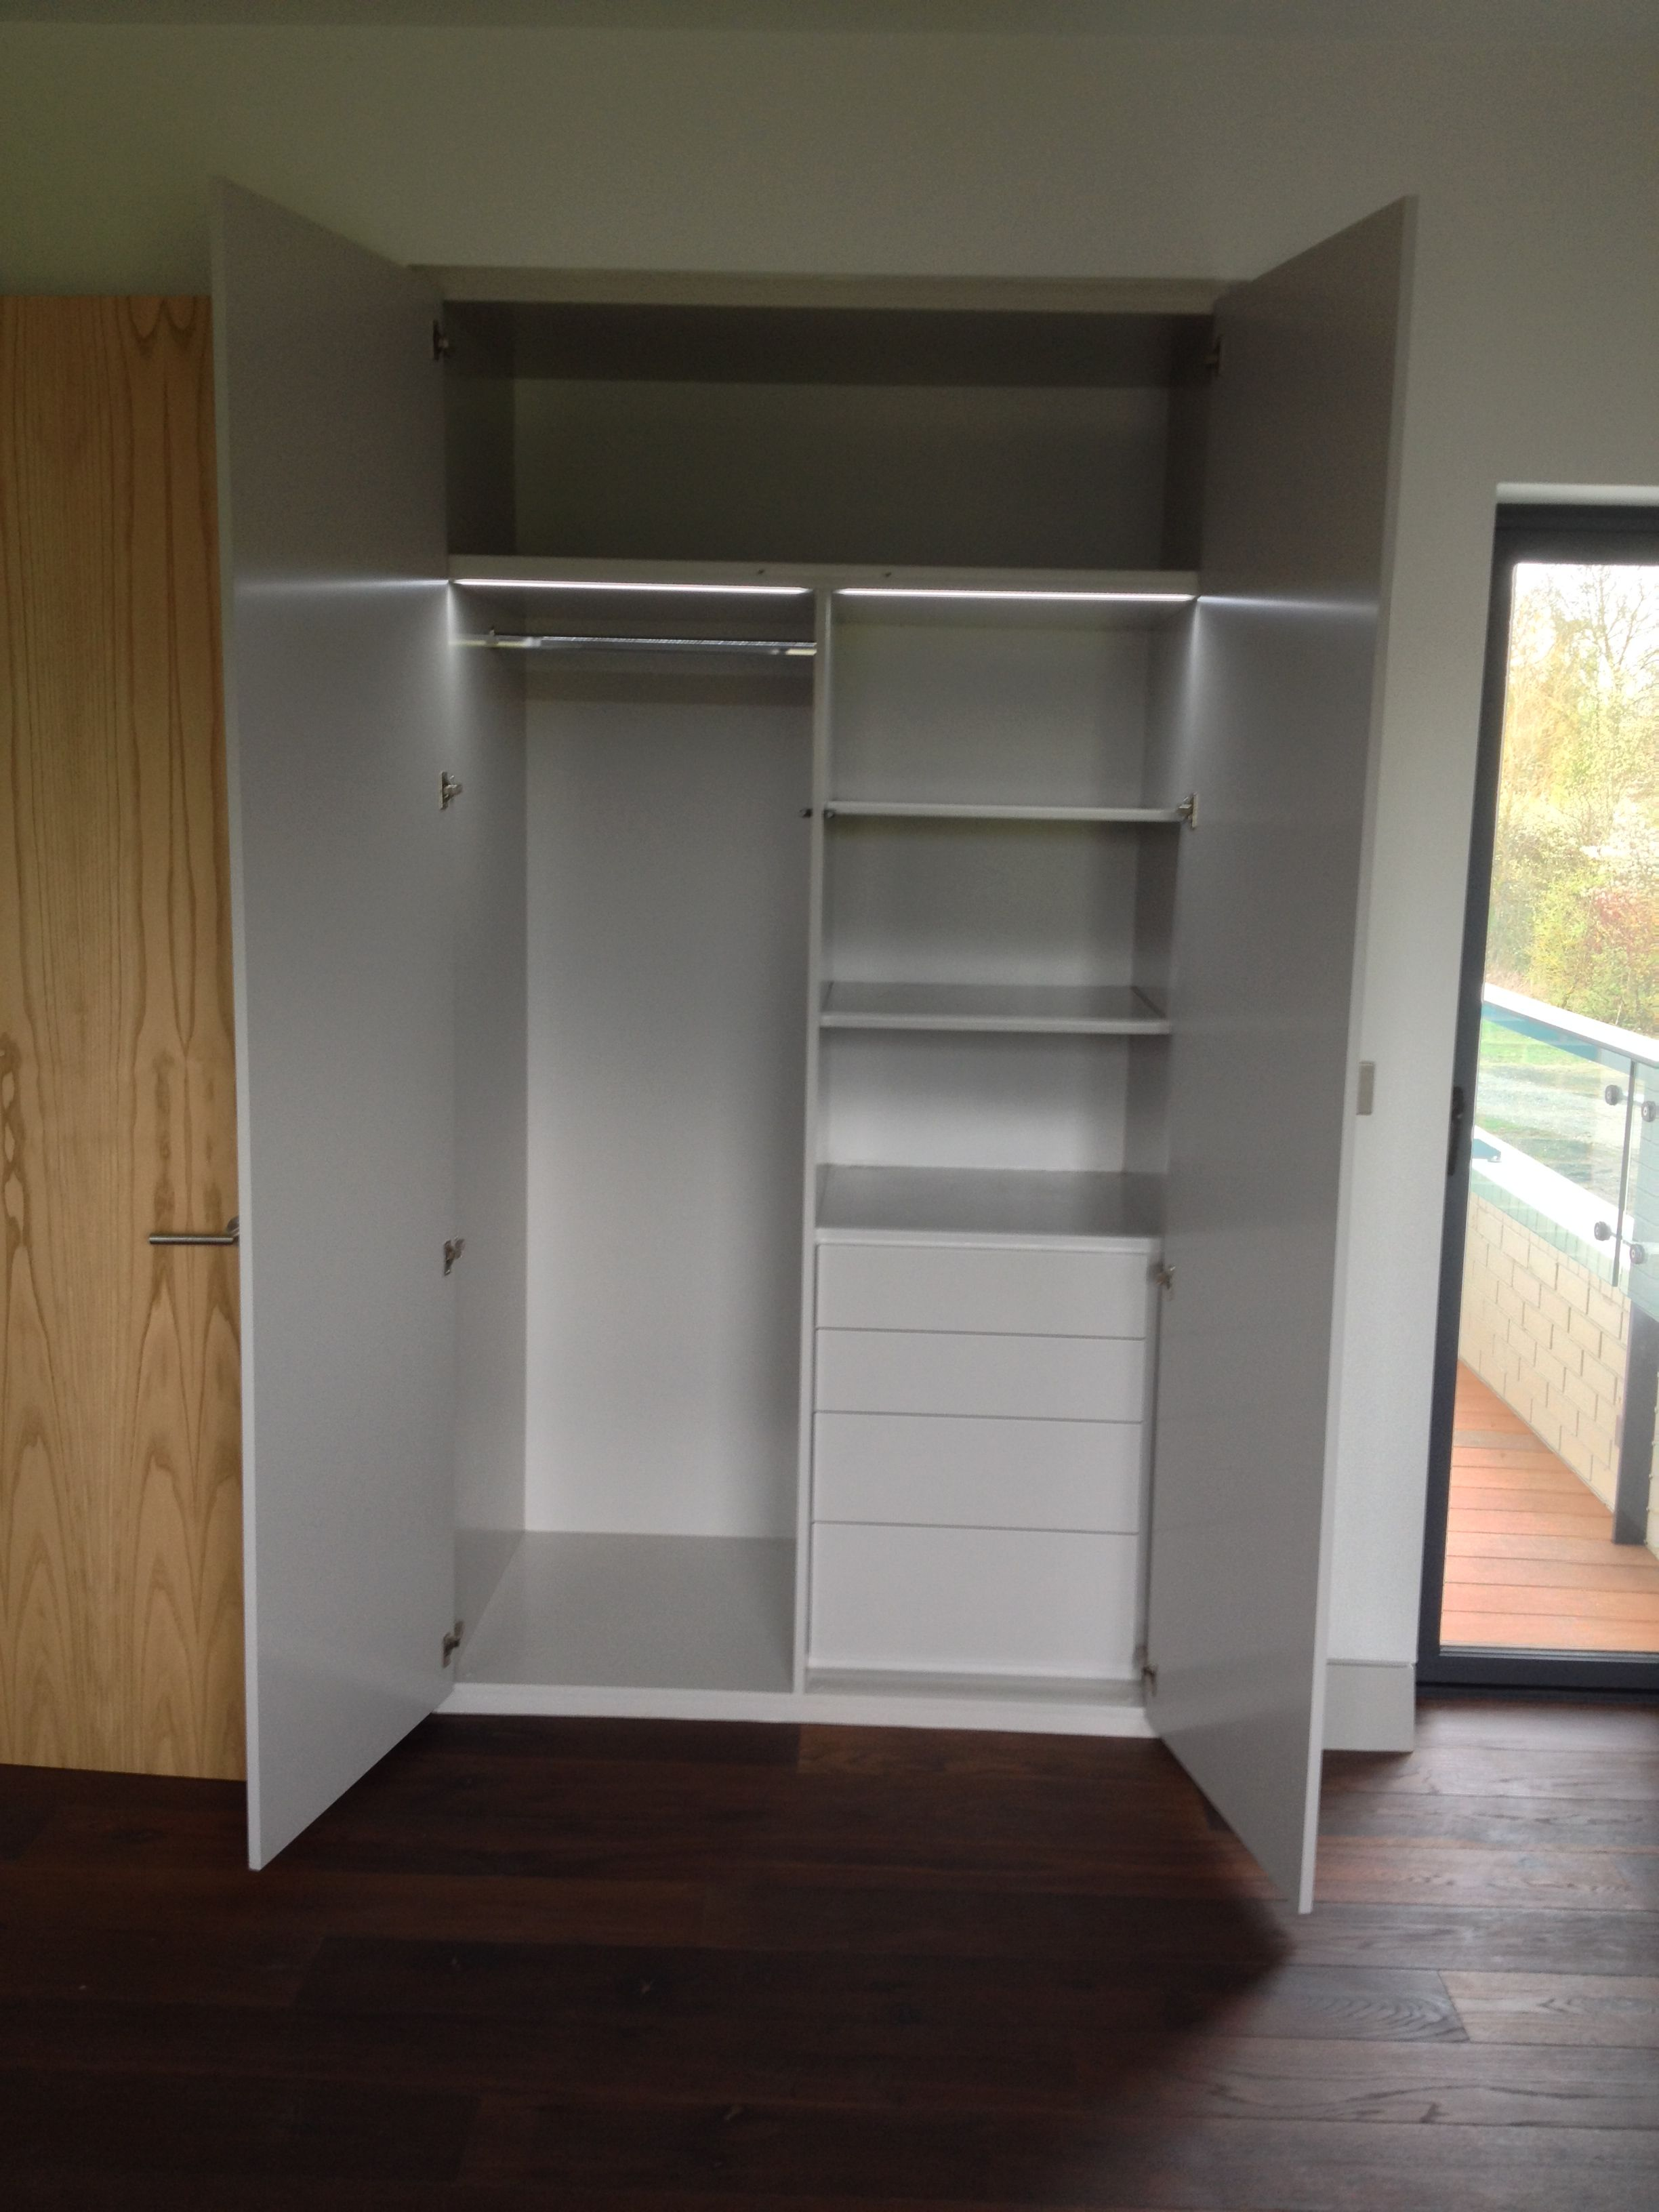 overhead bedroom furniture. Built-in Wardrobe Space With Overhead Area - Bespoke Design By Anthony Mullan Furniture. Bedroom Furniture E